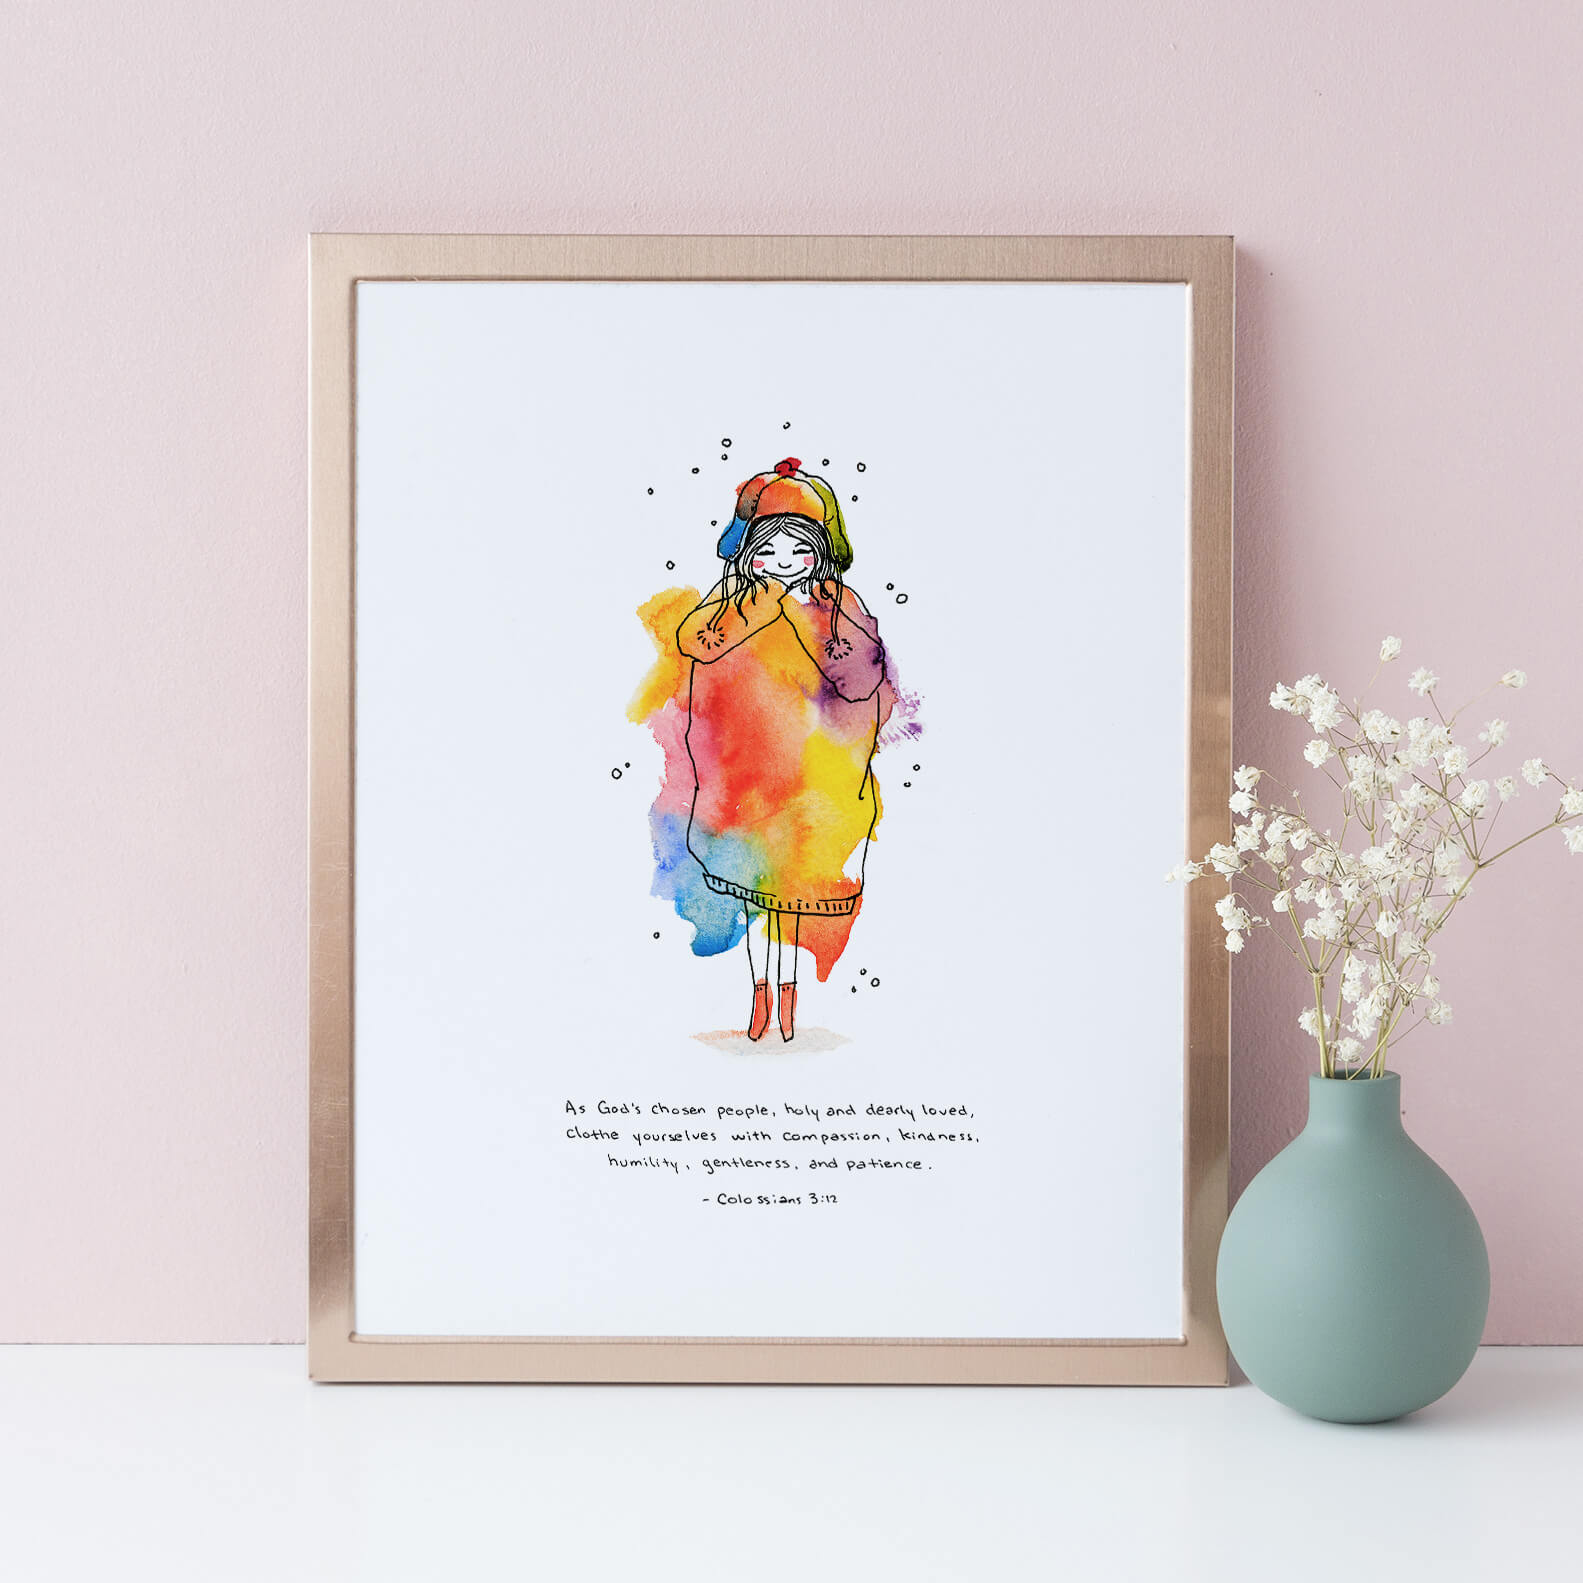 Framed Clothed in Love Art Print | Colossians 3:12